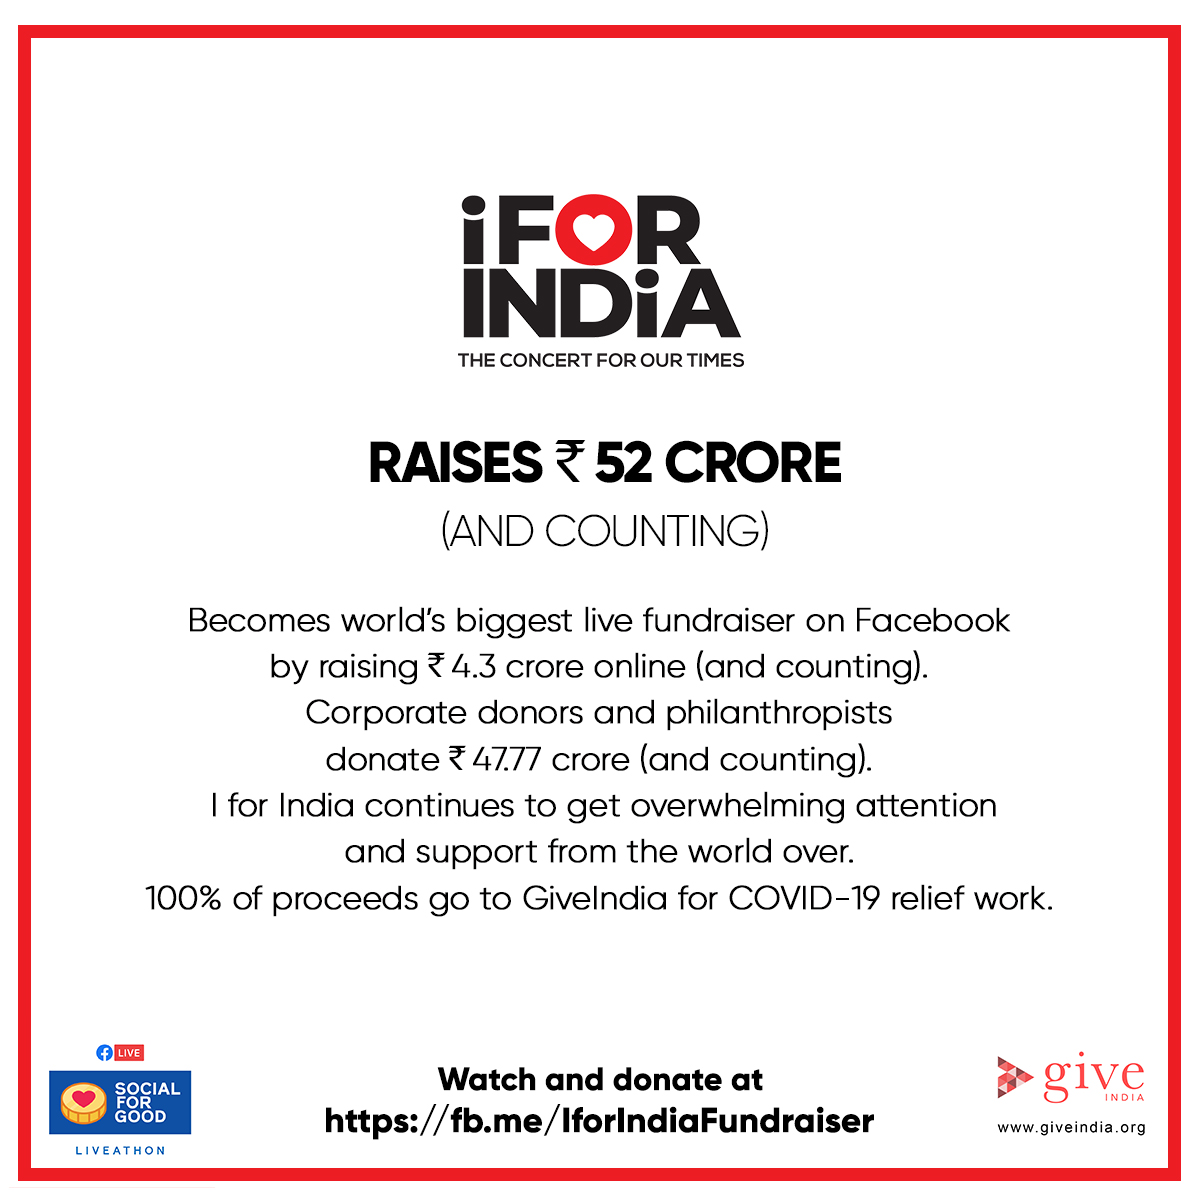 From our hearts to yours. Thank you for watching. Thank you for responding. Thank you for donating. #IForIndia started out as a concert. But it can be a movement. Let's continue to build a safe, healthy & strong India. I For India.